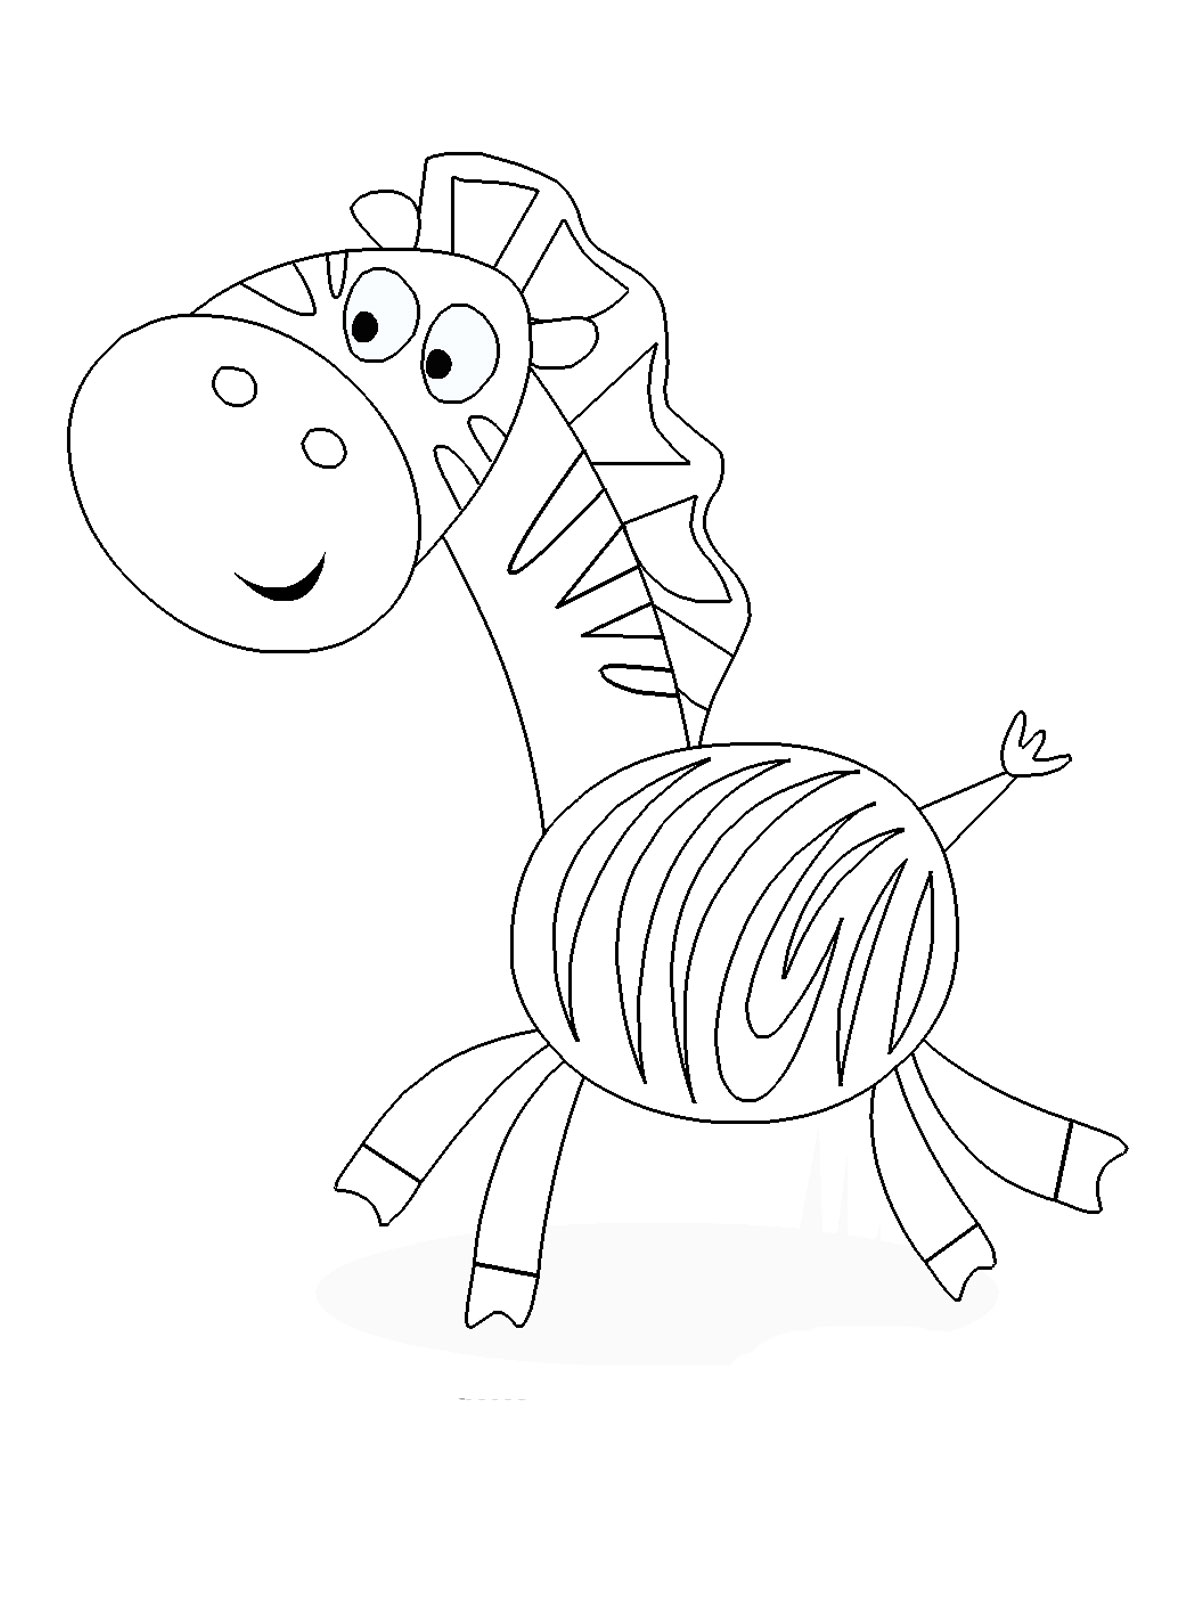 coloring pictures to color for kids 20 fun halloween coloring pages for kids hative color pictures coloring to for kids